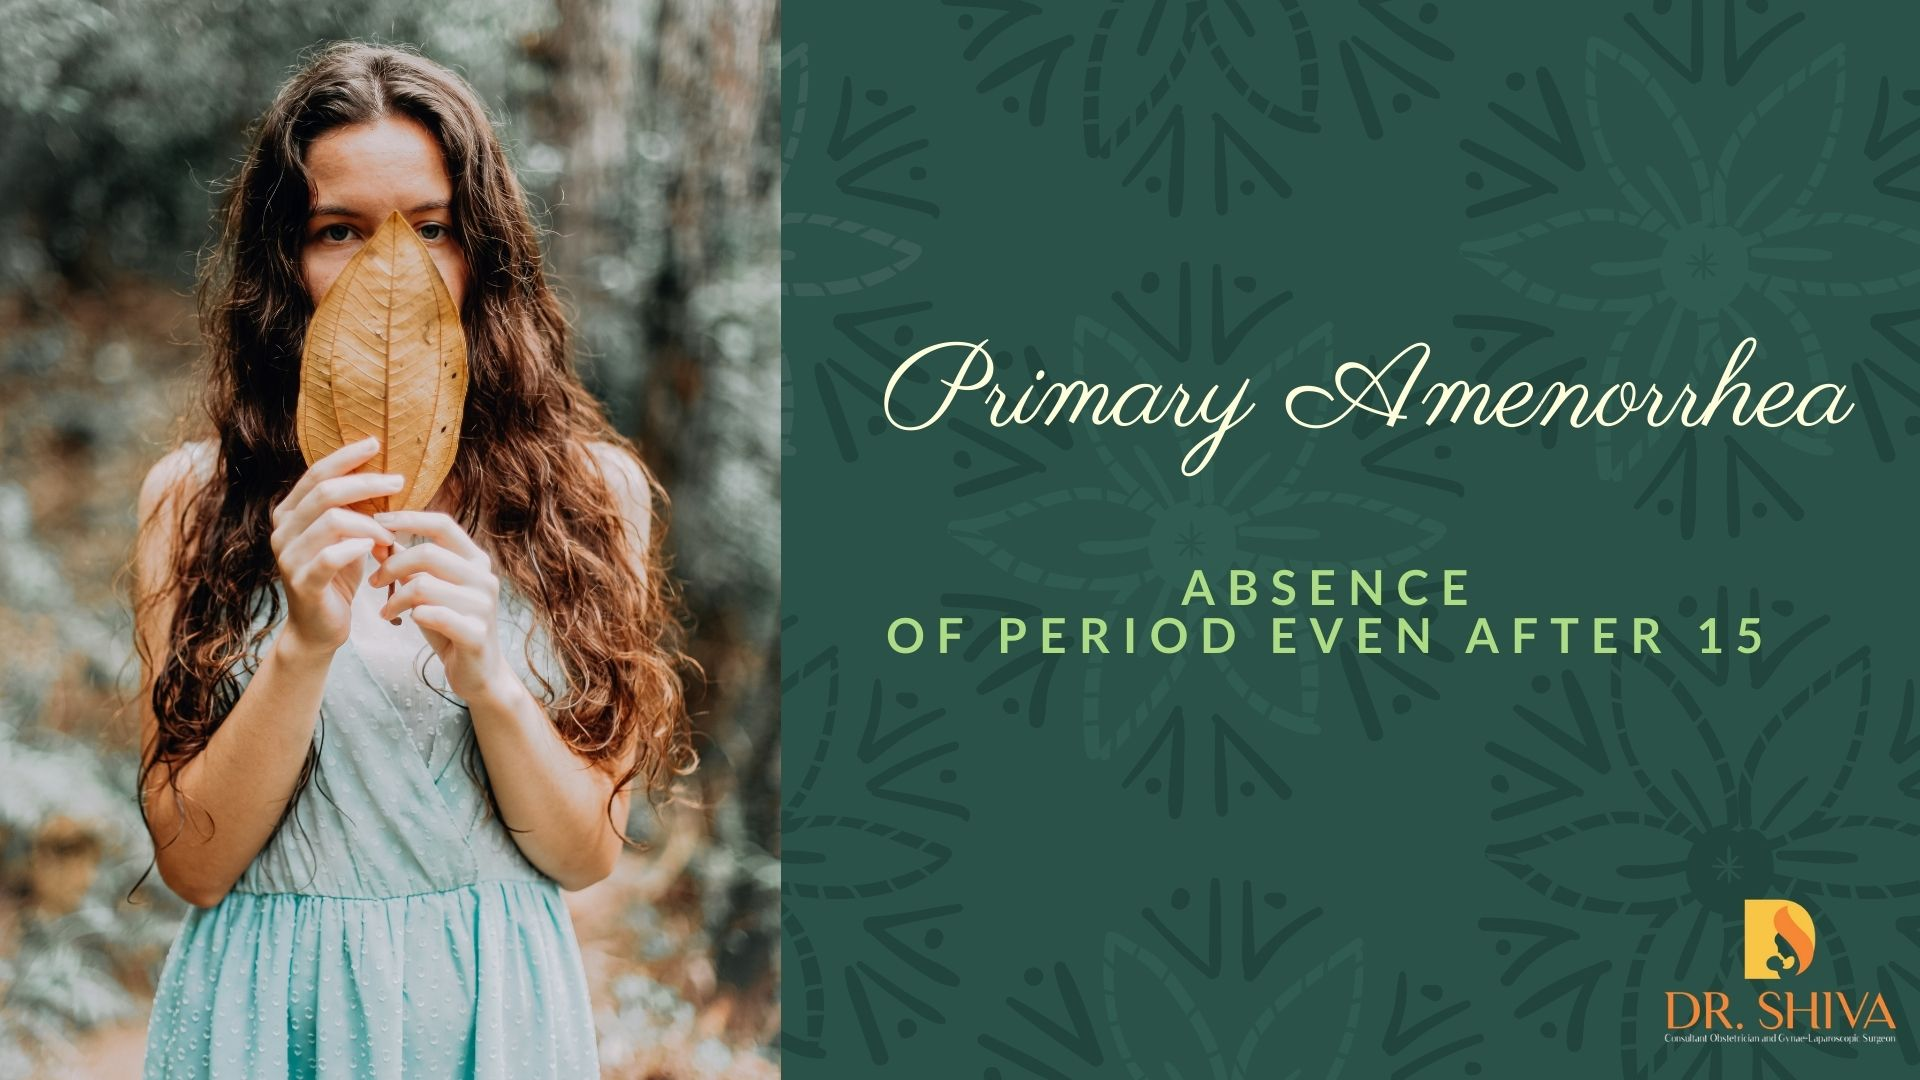 Absence of Periods even after 15